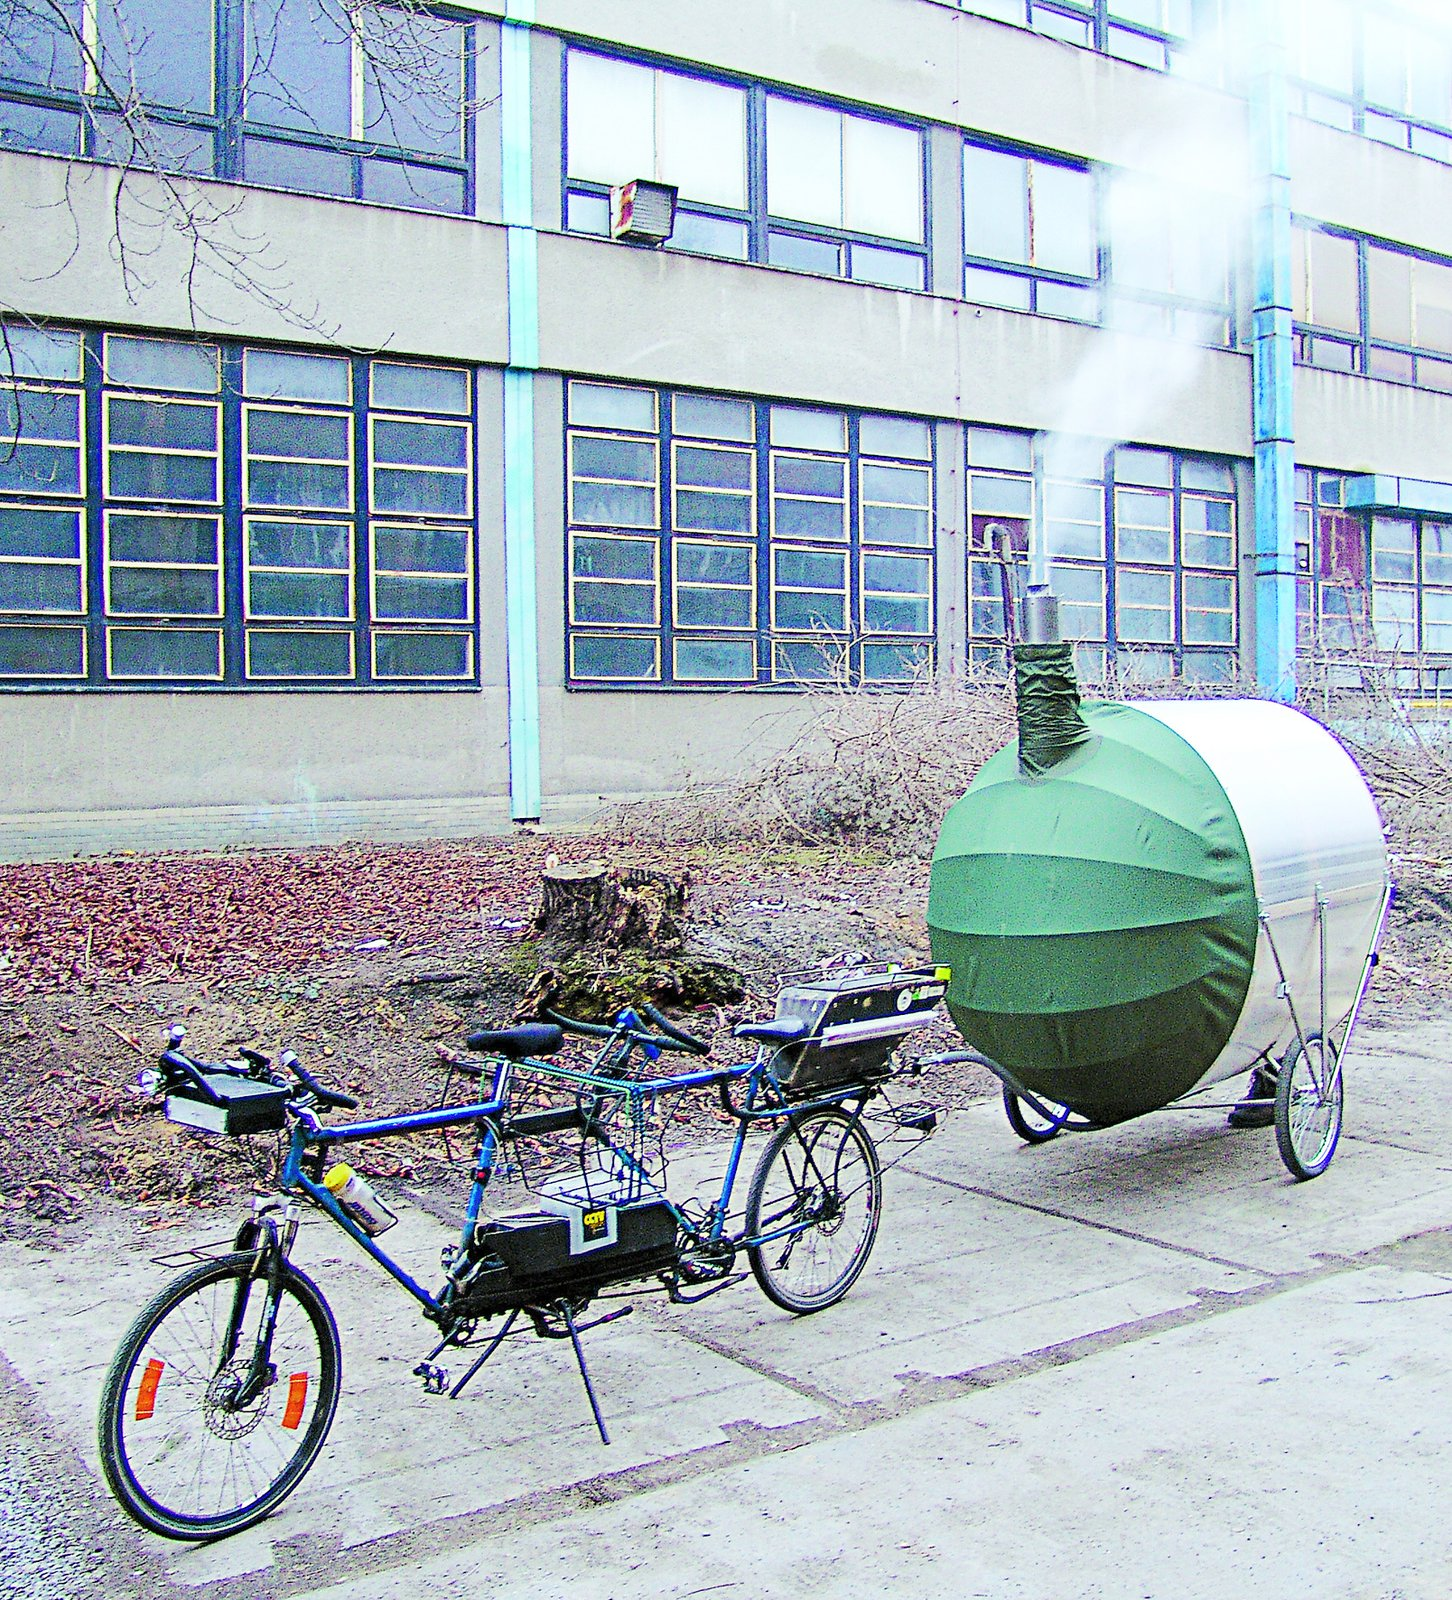 Bicycle Sauna, H3T Architects, 2011  Equipped with the necessary hookups to tow behind a tandem bike, this richshaw-like contraption is a sauna that, amazingly, can fit six. Heat is generated by an internal fireplace and trapped by the polycarbonate hood.  Independence and Mobility from Seriously Tiny (and Slightly Strange) Hangouts That Push the Limits of Micro-Living